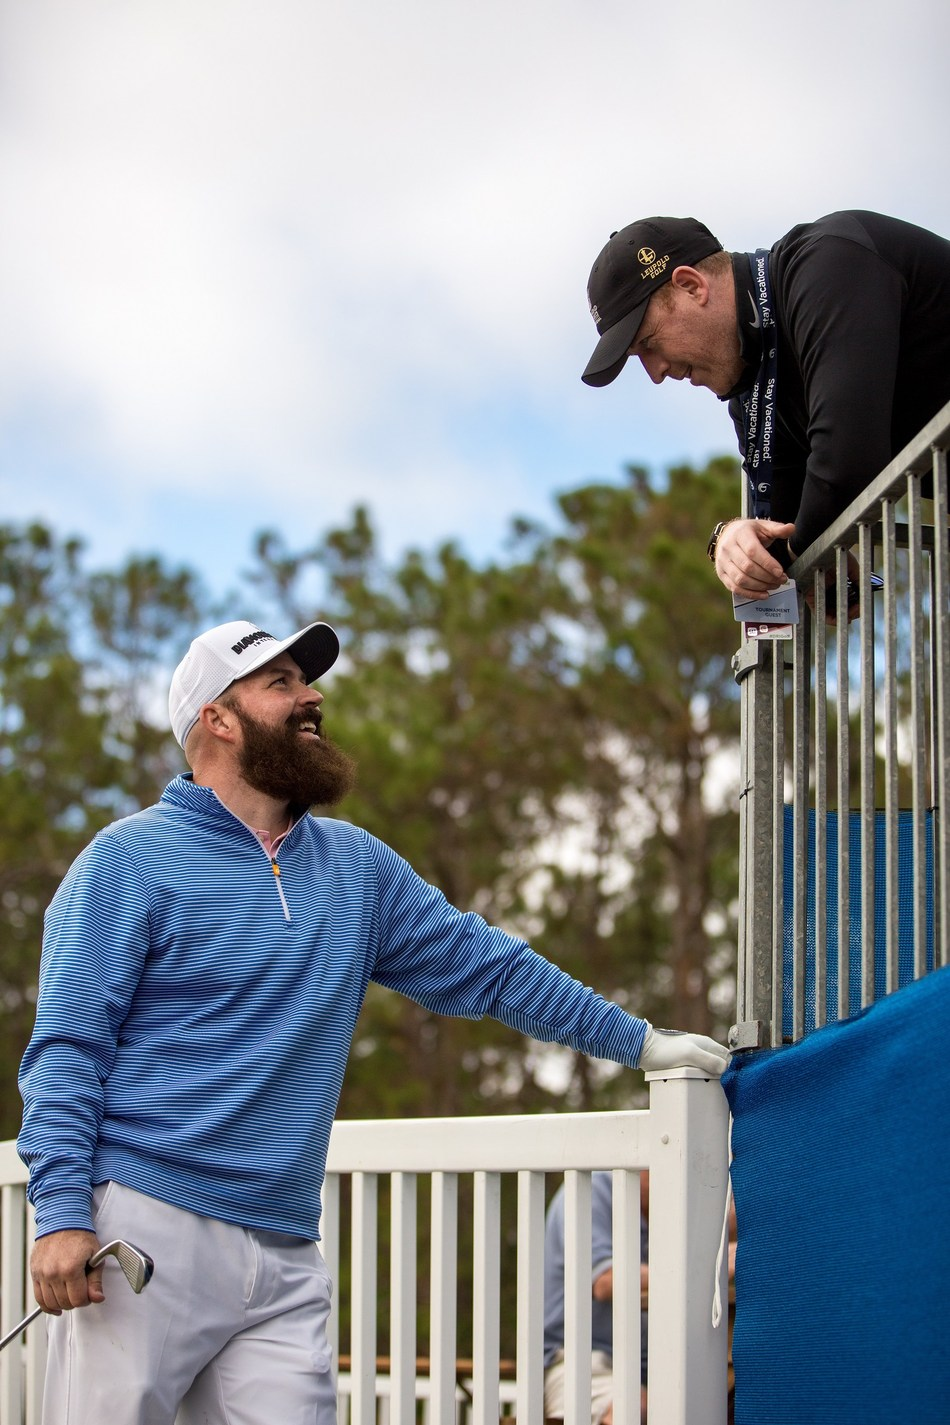 Retired U.S. Army Cpl. Chad Pfeifer, who is an Iraq War veteran, amputee and three-time champion of the Bush Institute Warrior Open, talks with a fan during the 2018 Diamond Resorts golf tournament. Pfeifer is scheduled to compete in the inaugural Diamond Resorts Tournament of Champions Presented by Insurance Office of America, the LPGA Tour's new 2019 season opener, held Jan. 17-20, 2019.